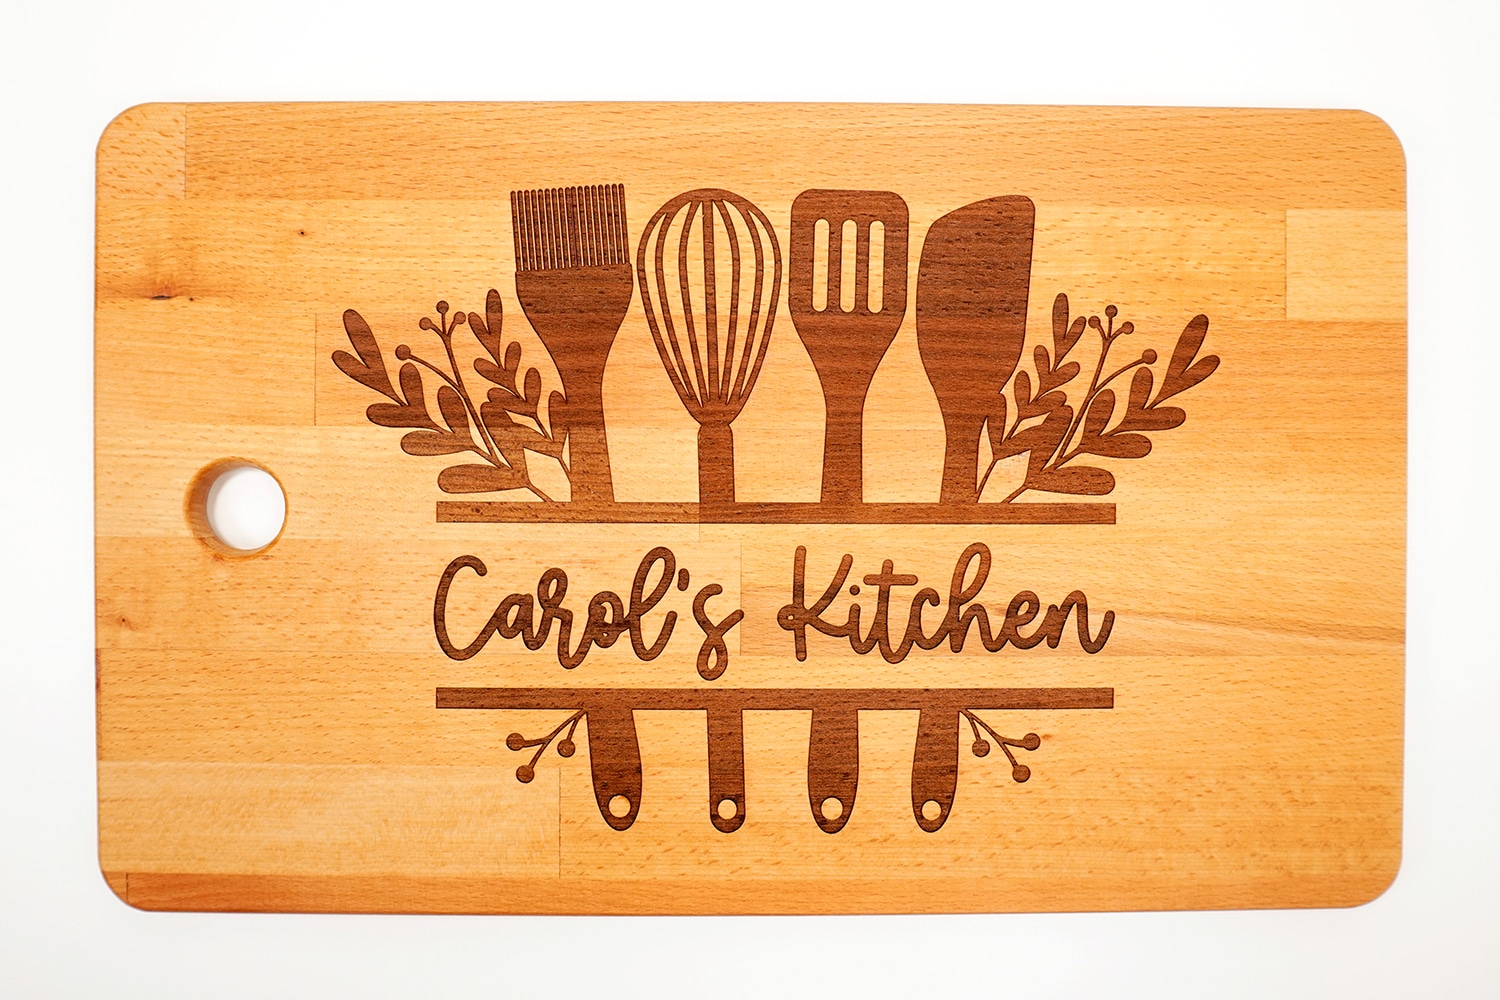 "Glowforge Engraved Ikea Cutting Board with ""Carol's Kitchen"" design on white background"